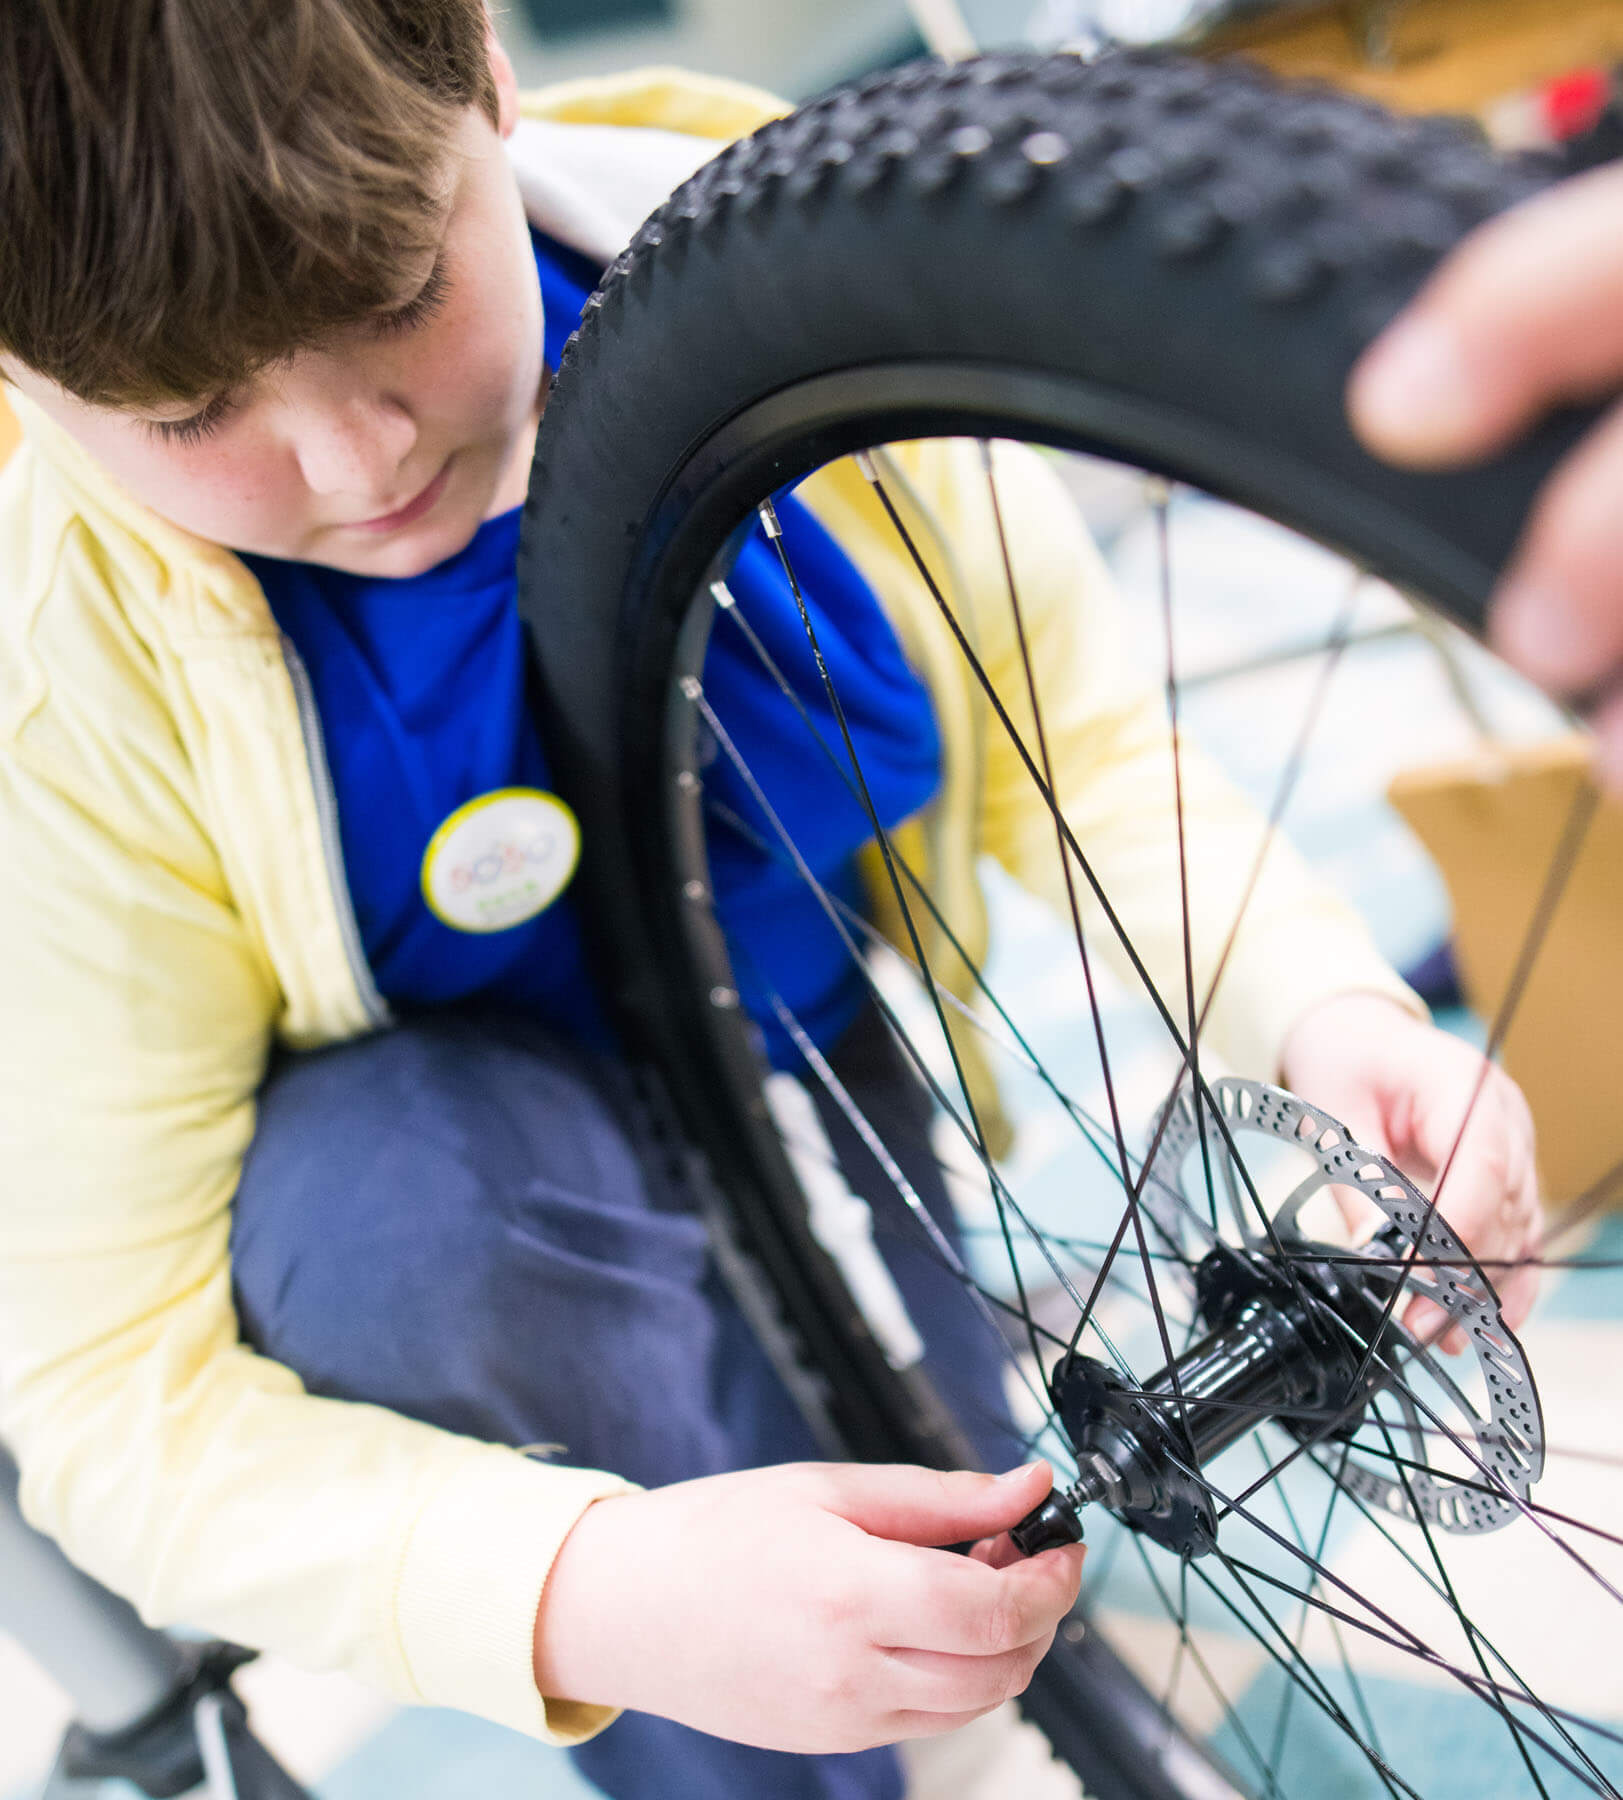 50 Bikes for 50 Kids – Building a Better Future